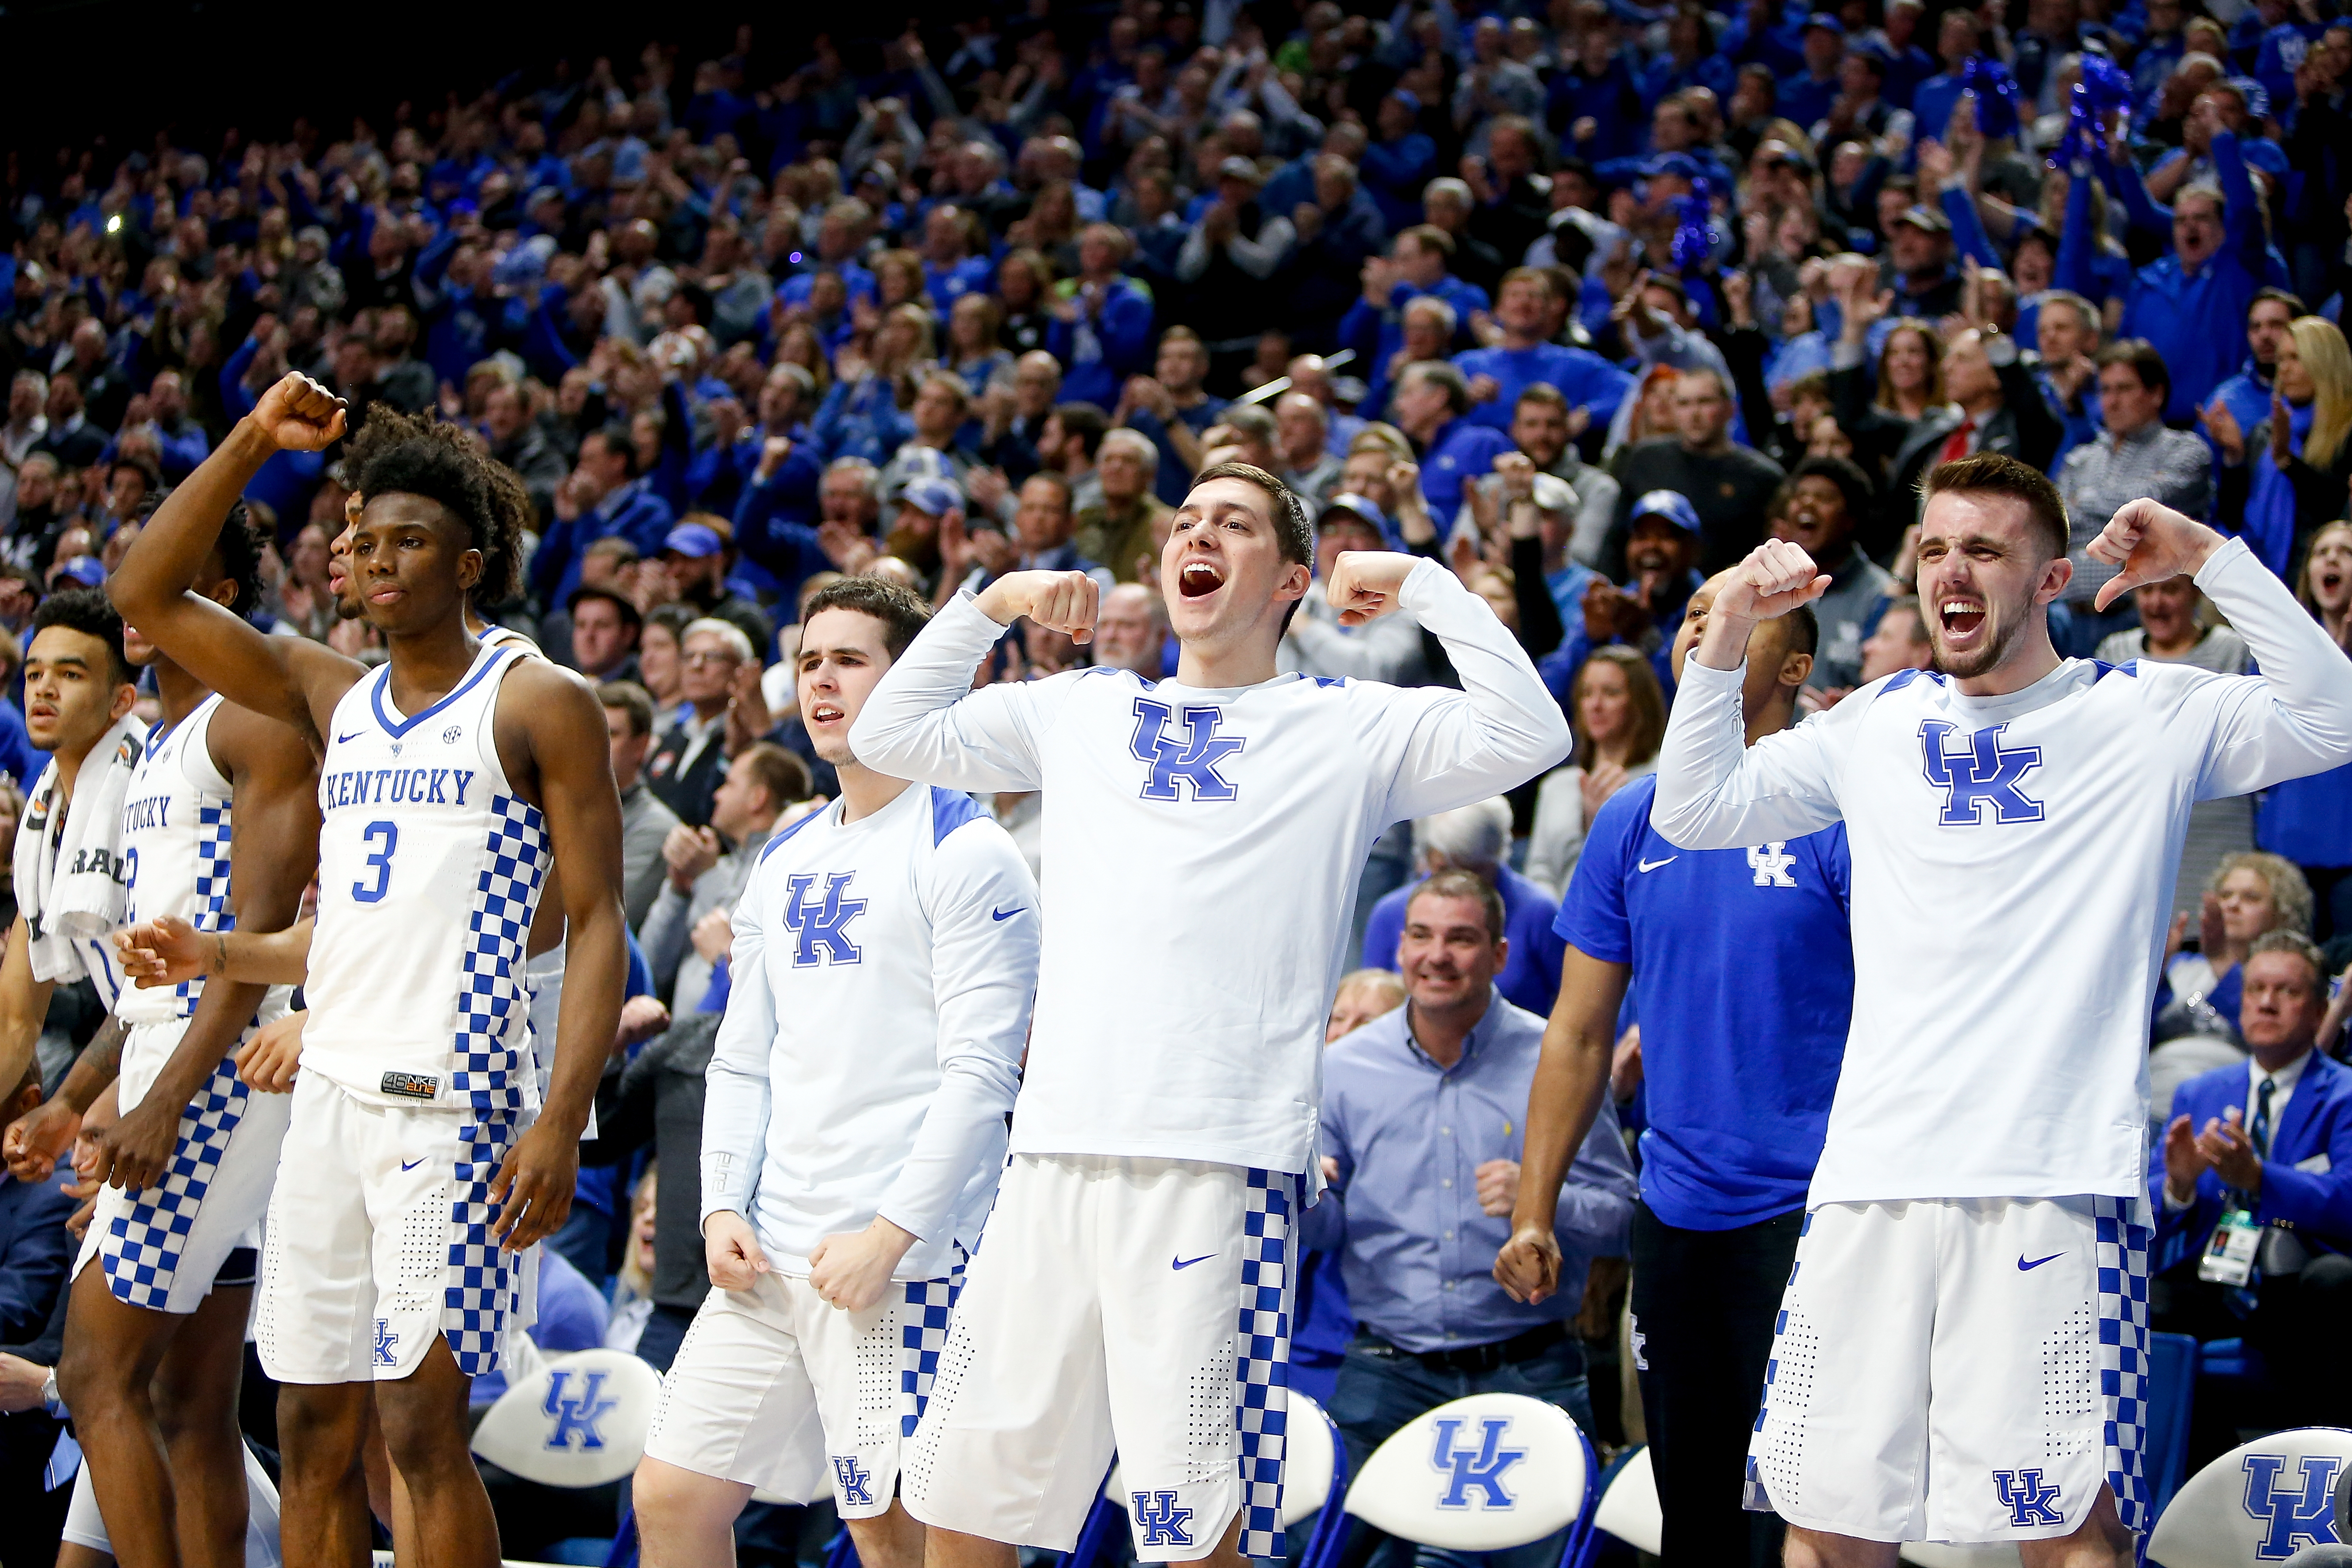 Kentucky basketball: Nation's longest 3-point streak threatened at Missouri